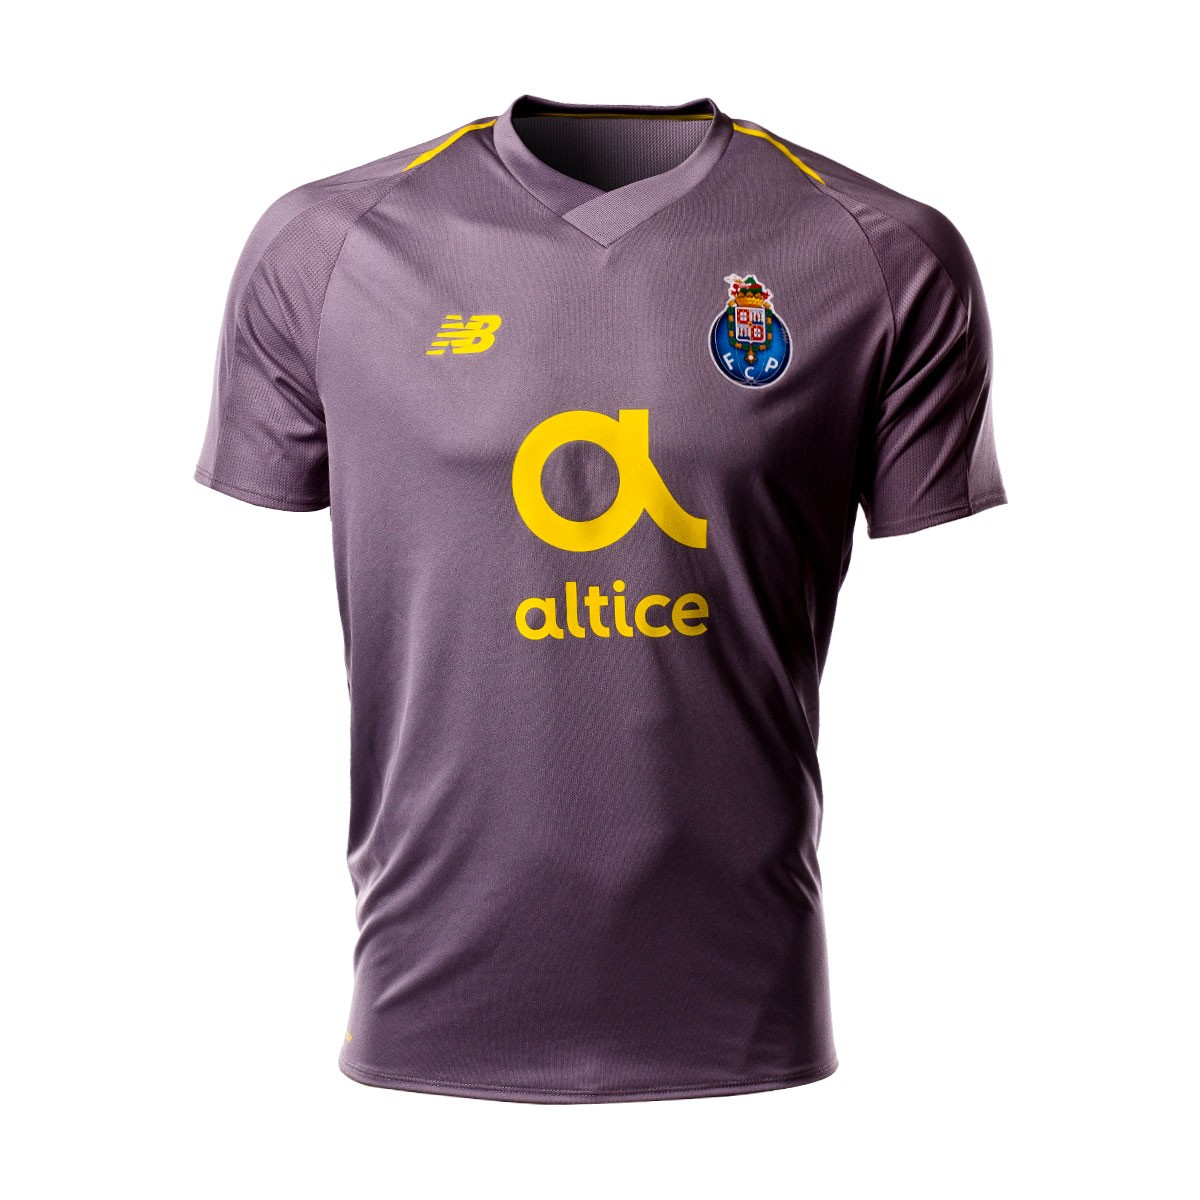 aad3f2b9eb9 Jersey New Balance FC Porto 2018-2019 Away Grey - Football store ...